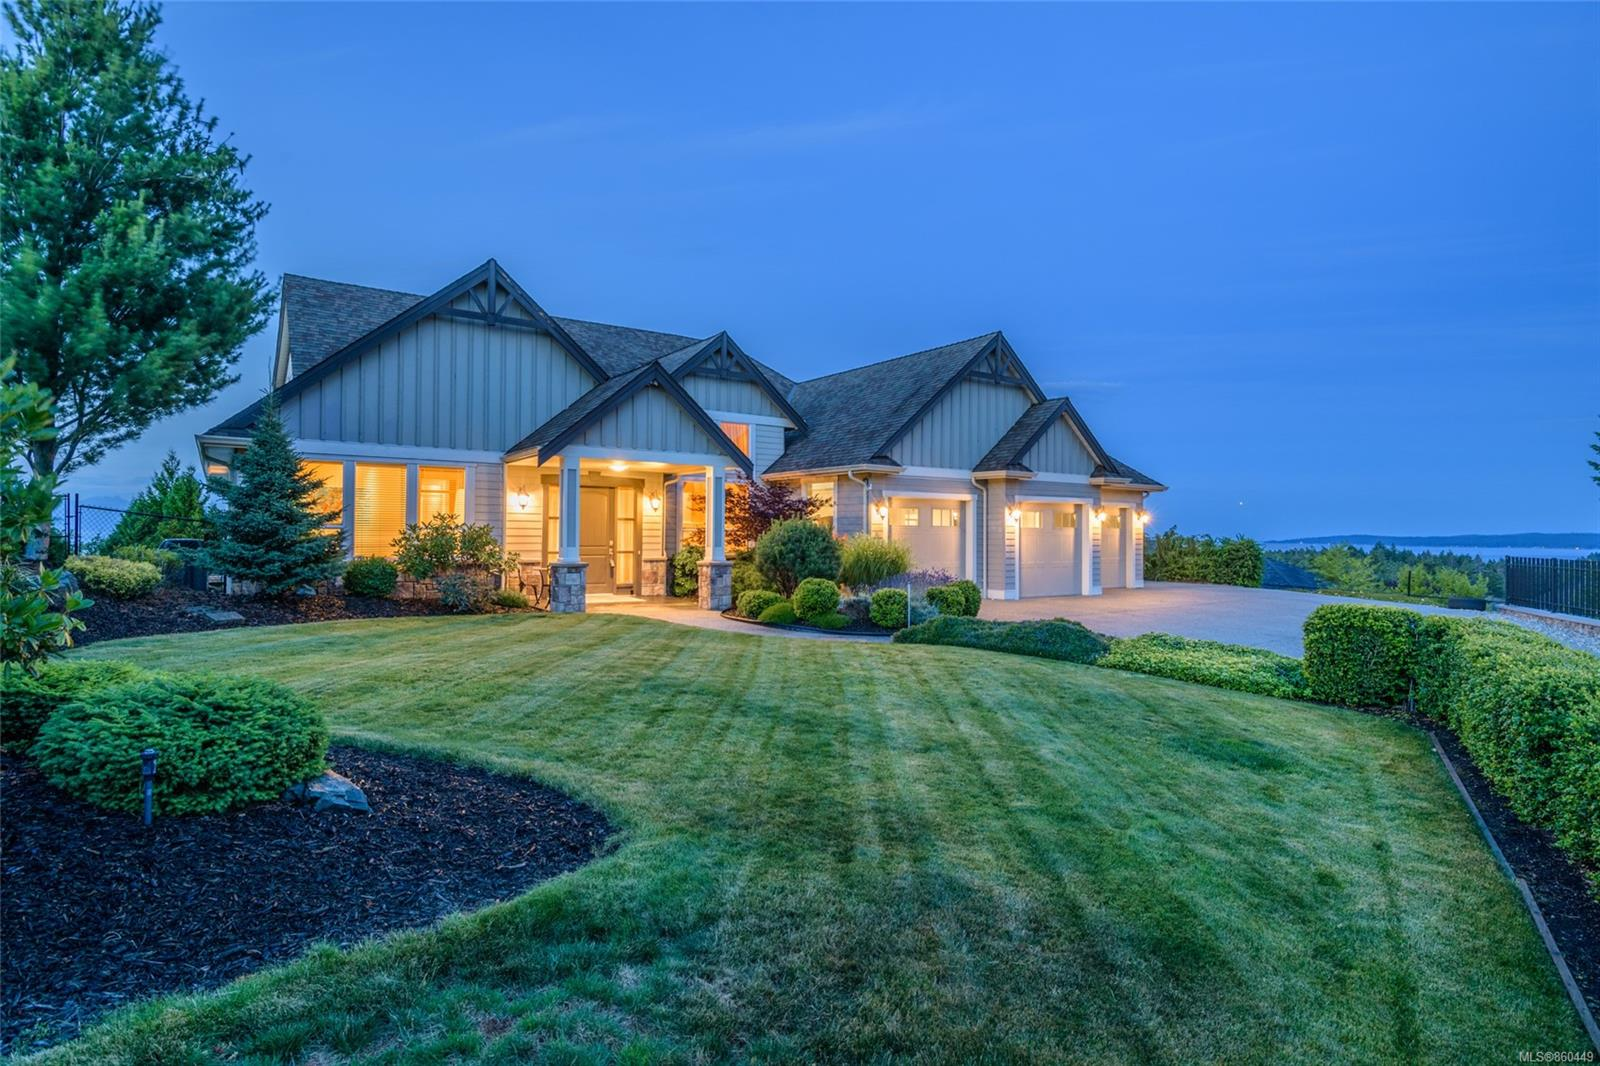 FEATURED LISTING: 5019 Hinrich View